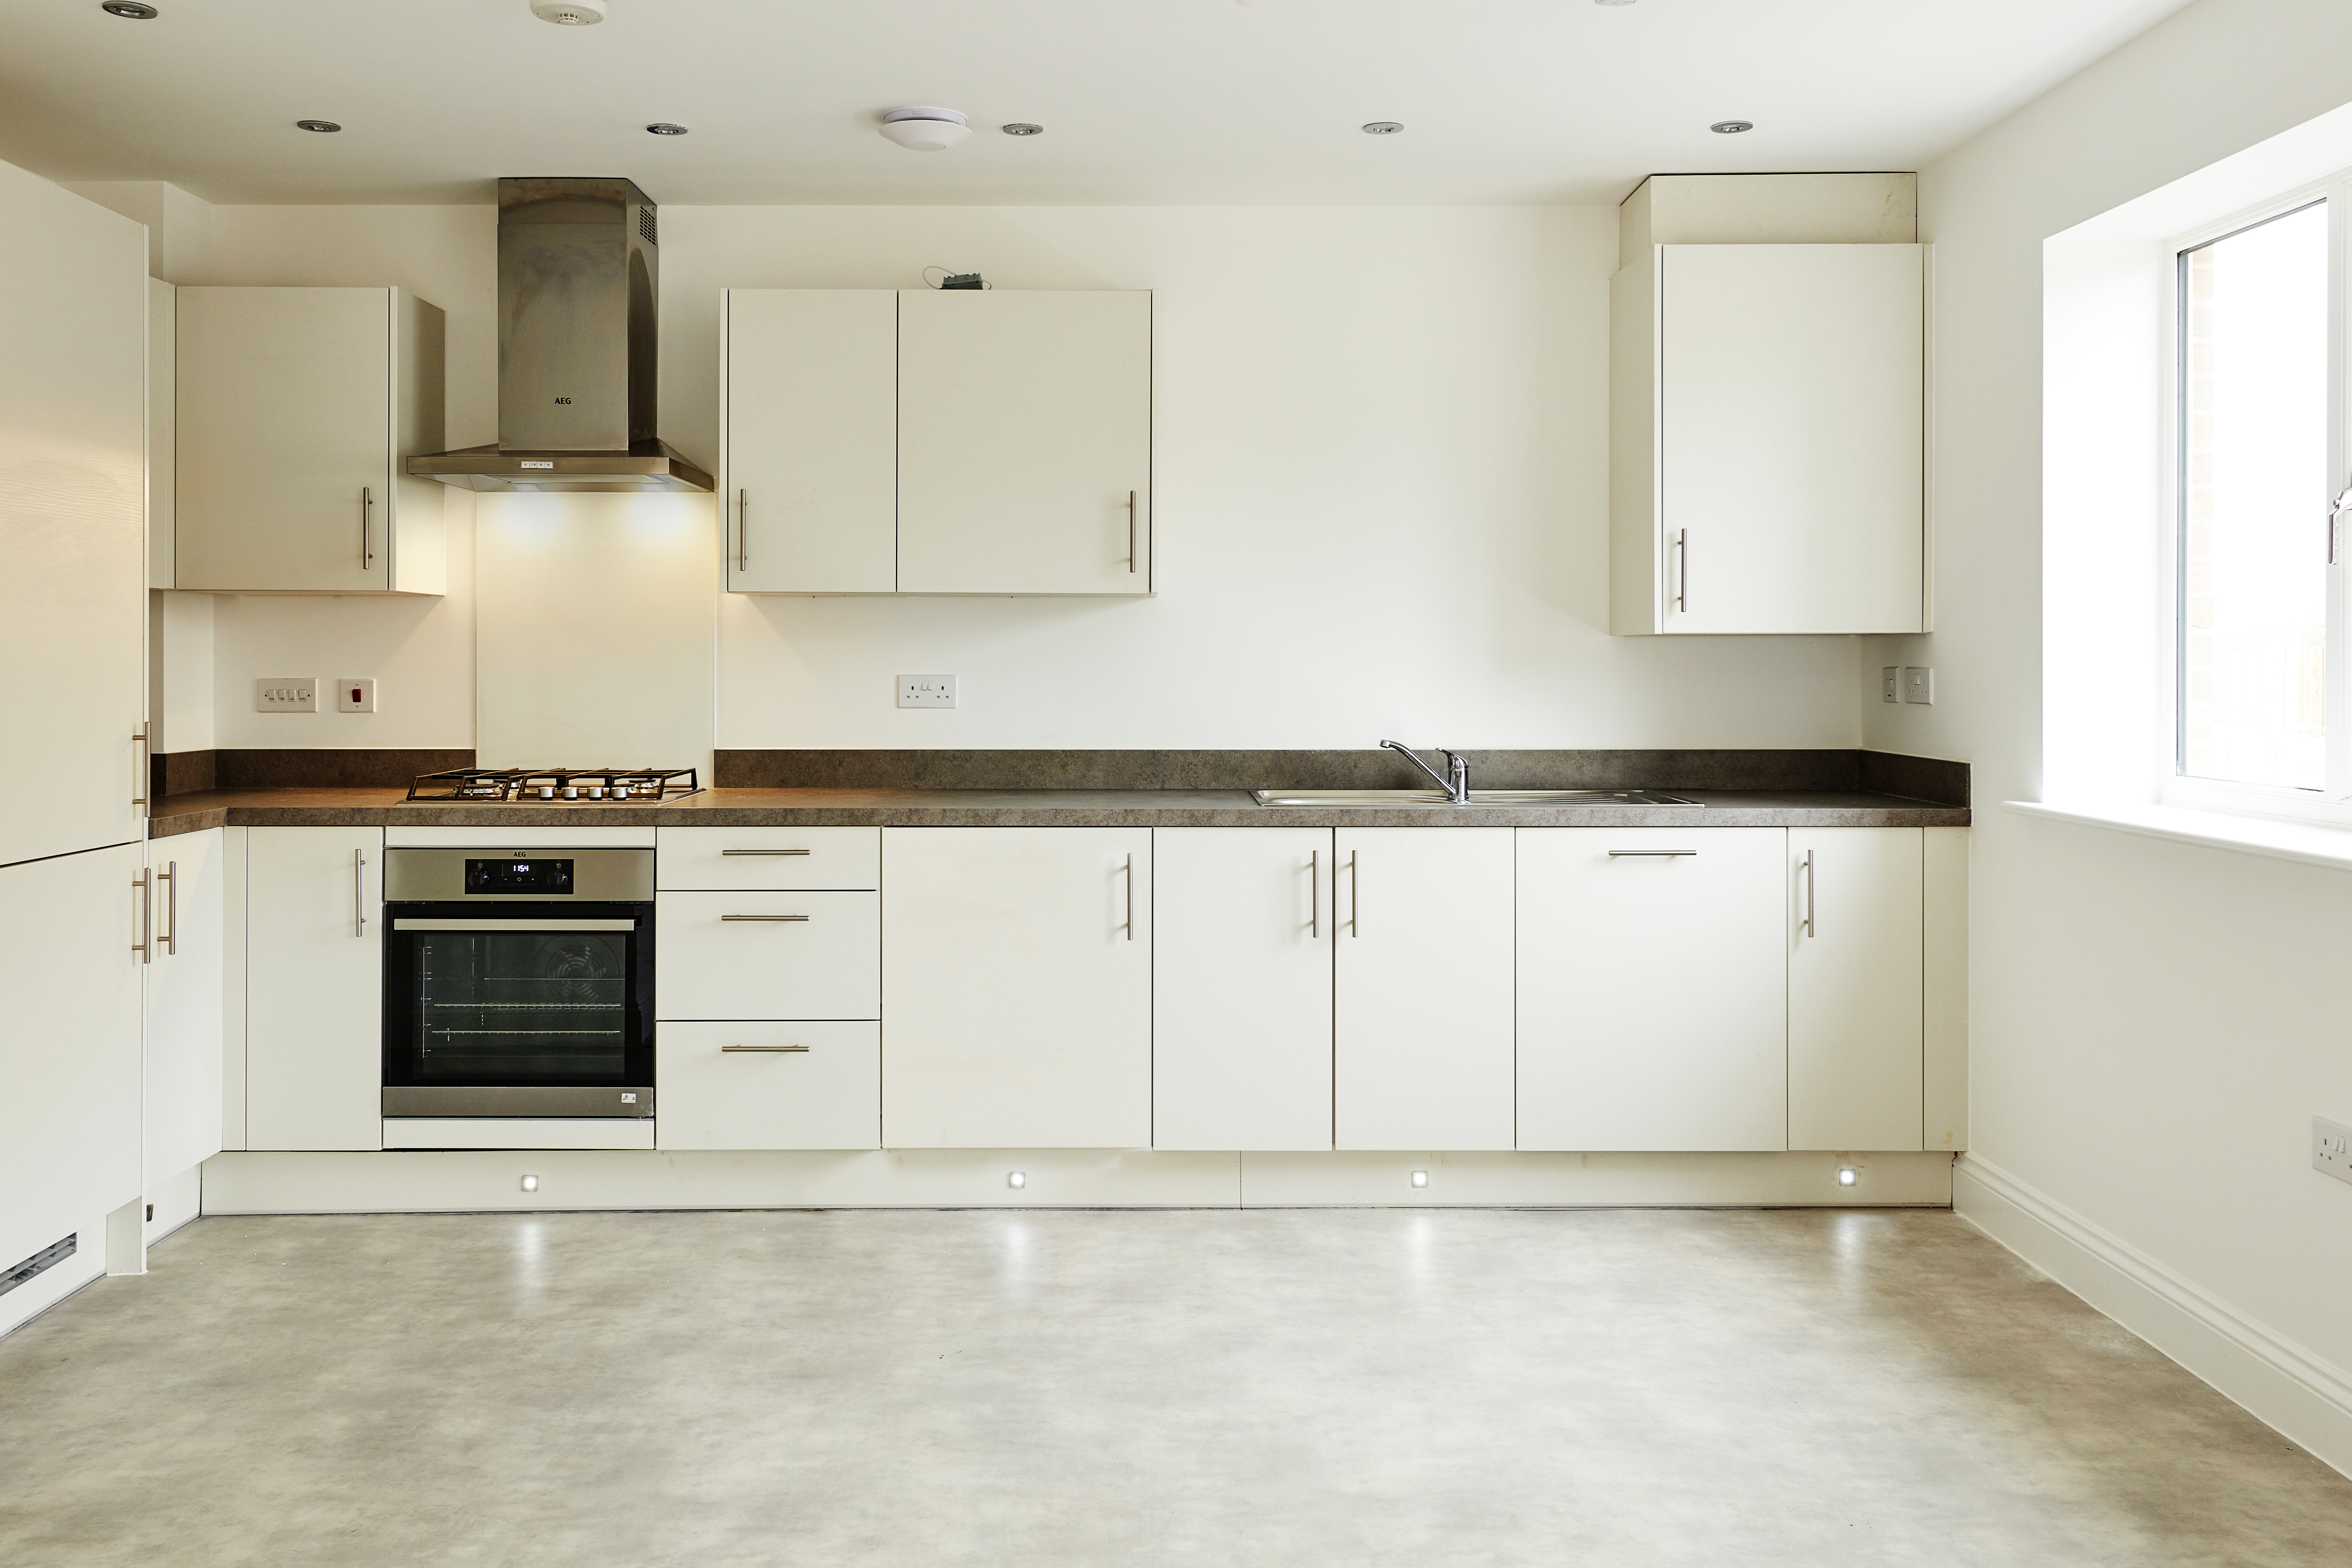 TW WL Croft GardensSpencers Woodplot 664Internals Kitchen 1